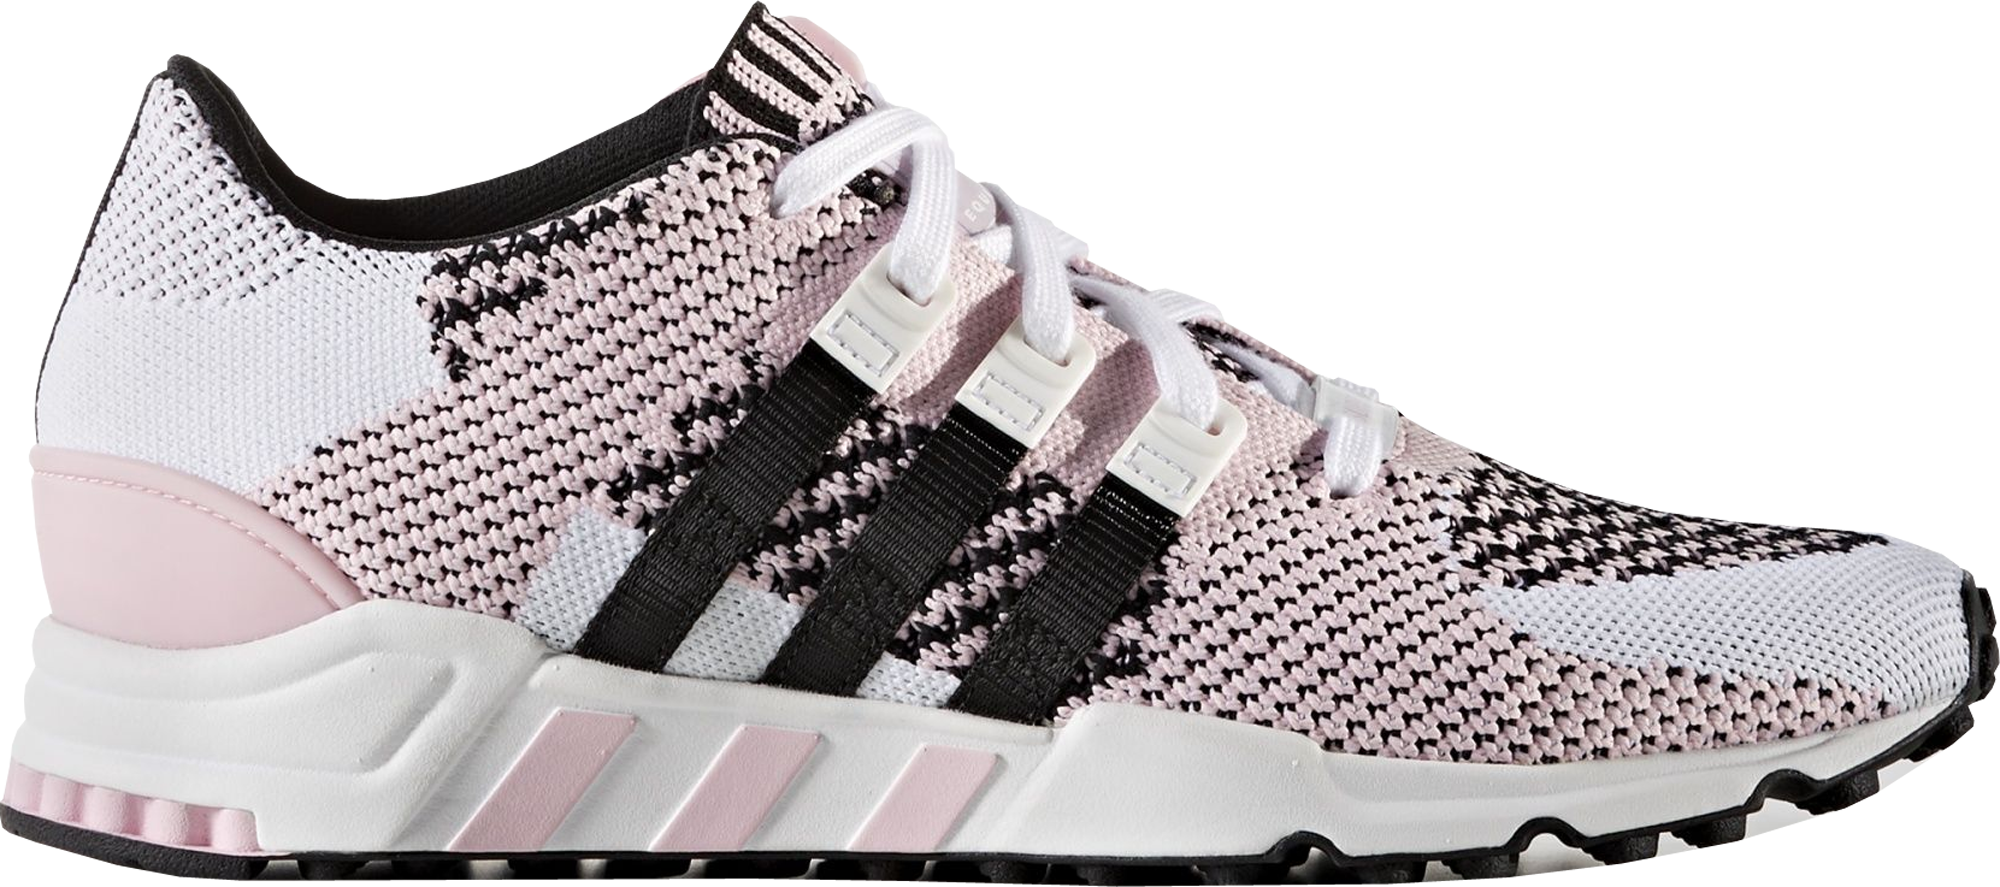 outlet store 79cec 22fb2 adidas EQT Support RF Primeknit Pink Black (W) - StockX News